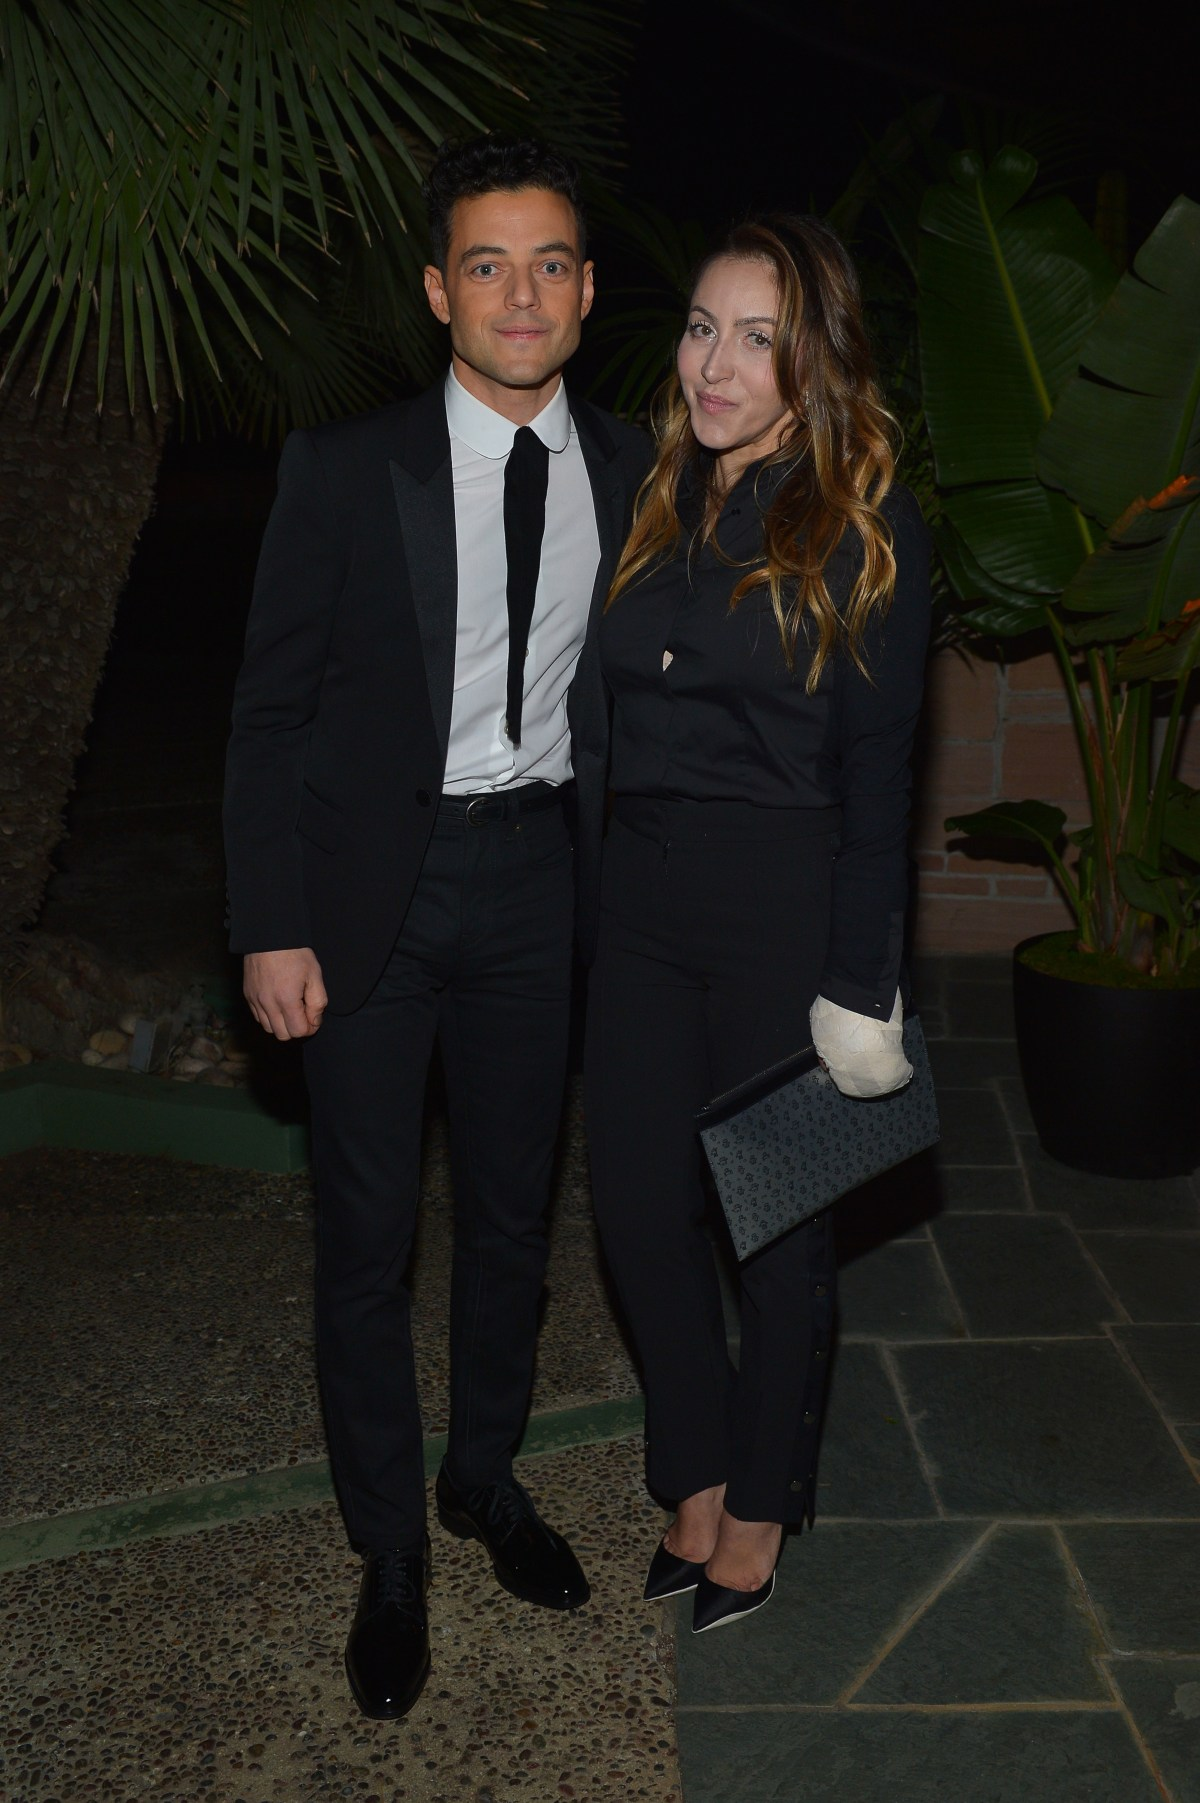 Saint Laurent Pre-Golden Globes Party Hosted By Anthony Vaccarello And Rami Malek